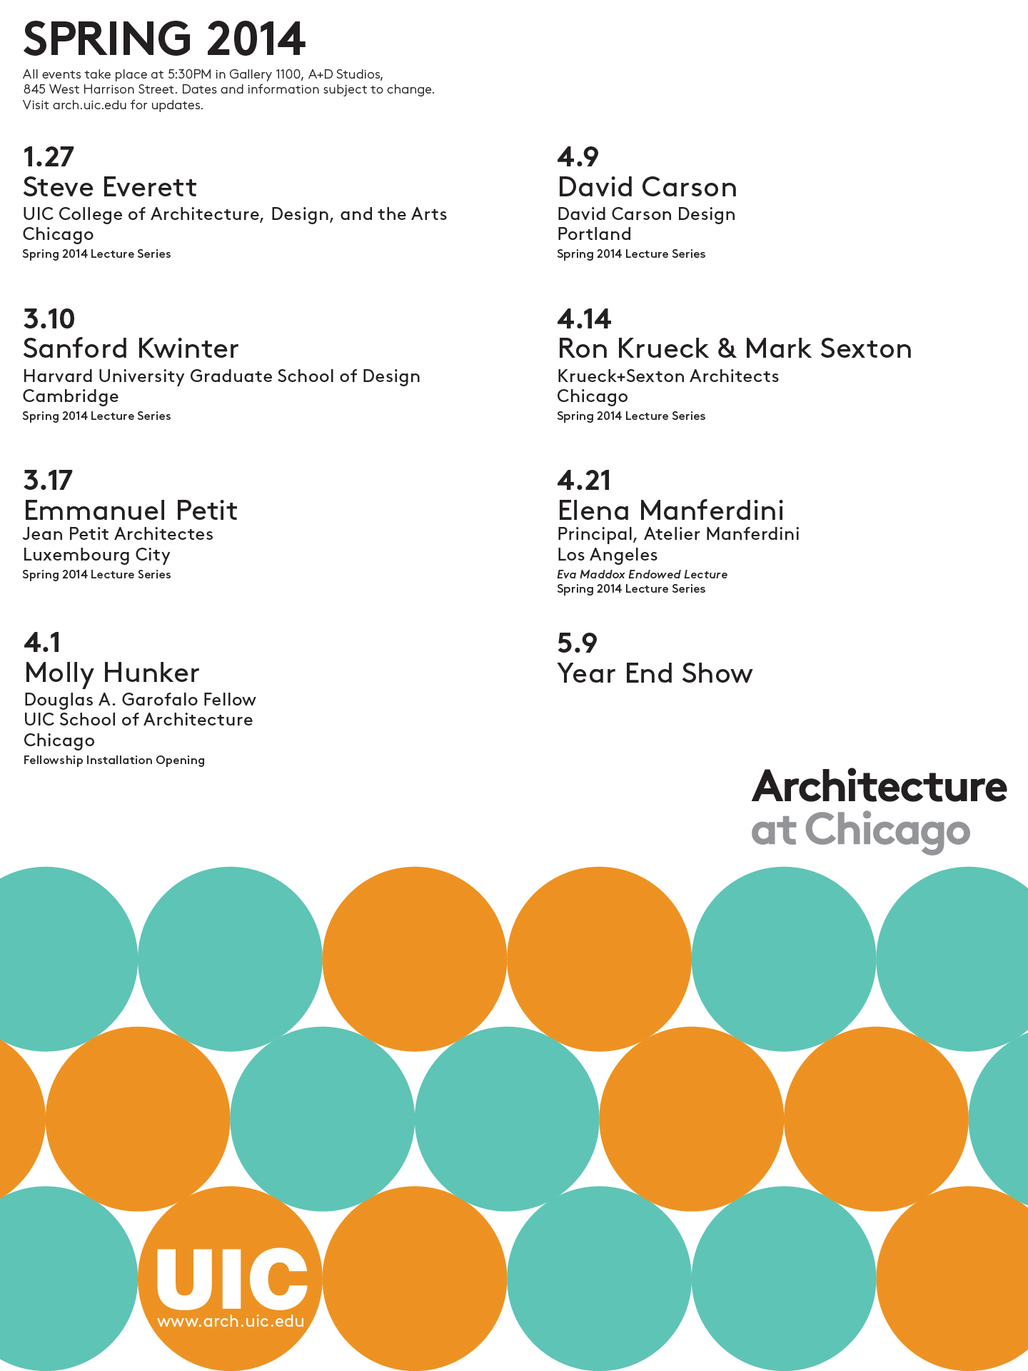 Spring '14 Lecture Series at UIC School of Architecture. Image courtesy of UIC School of Architecture.